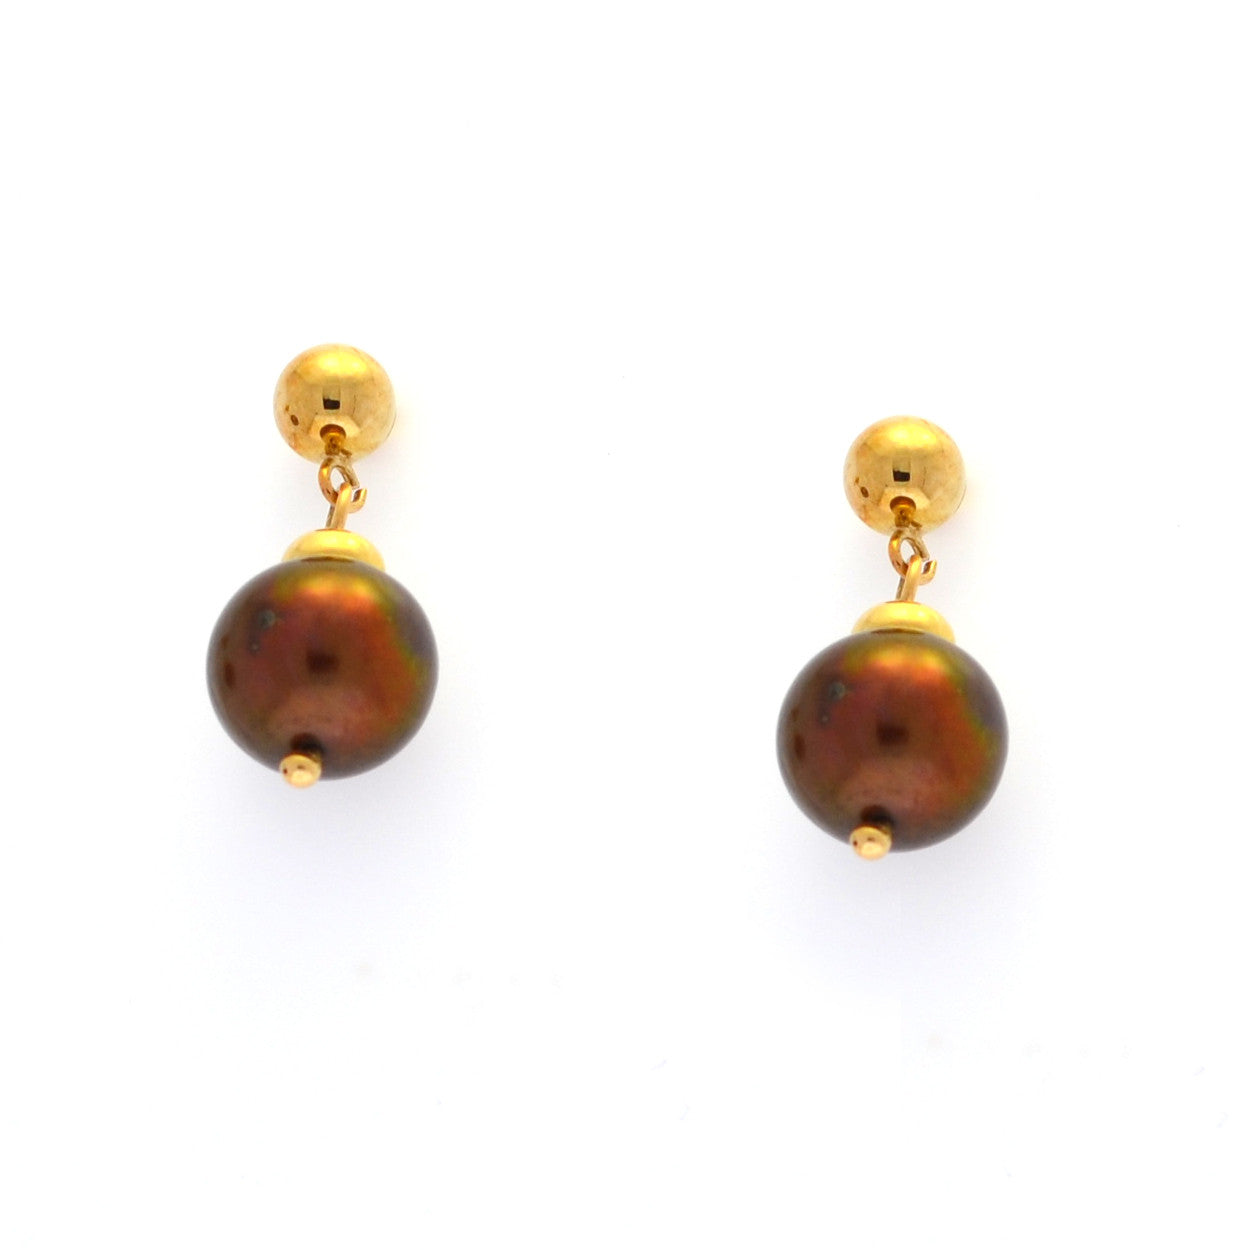 Chocolate Cultured Pearls in Yellow Gold